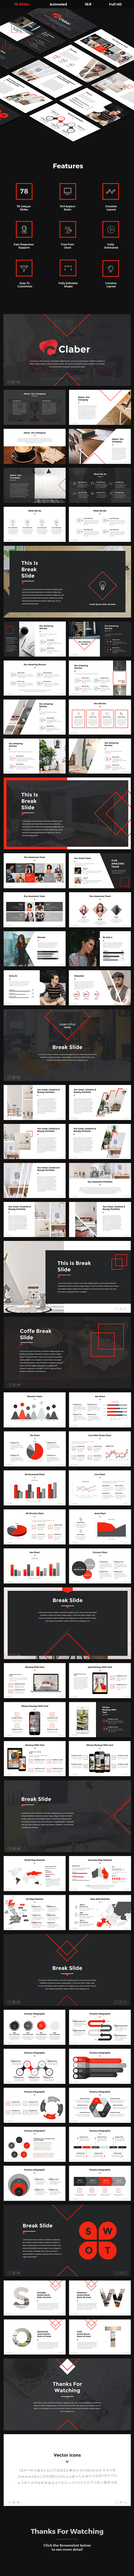 Claber - Creative Google Slides Template - Google Slides Presentation Templates